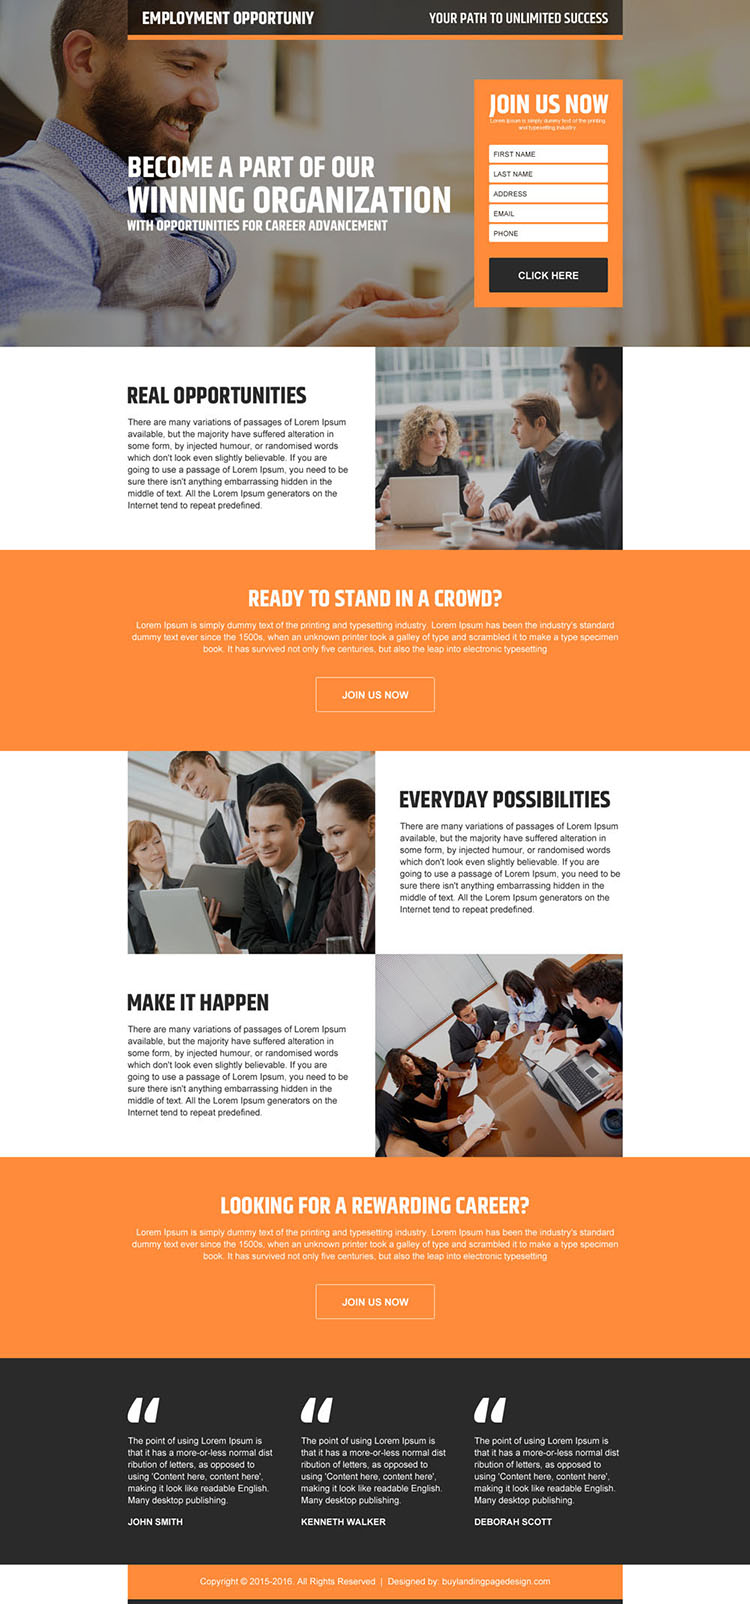 real employment opportunity lead generating landing page design